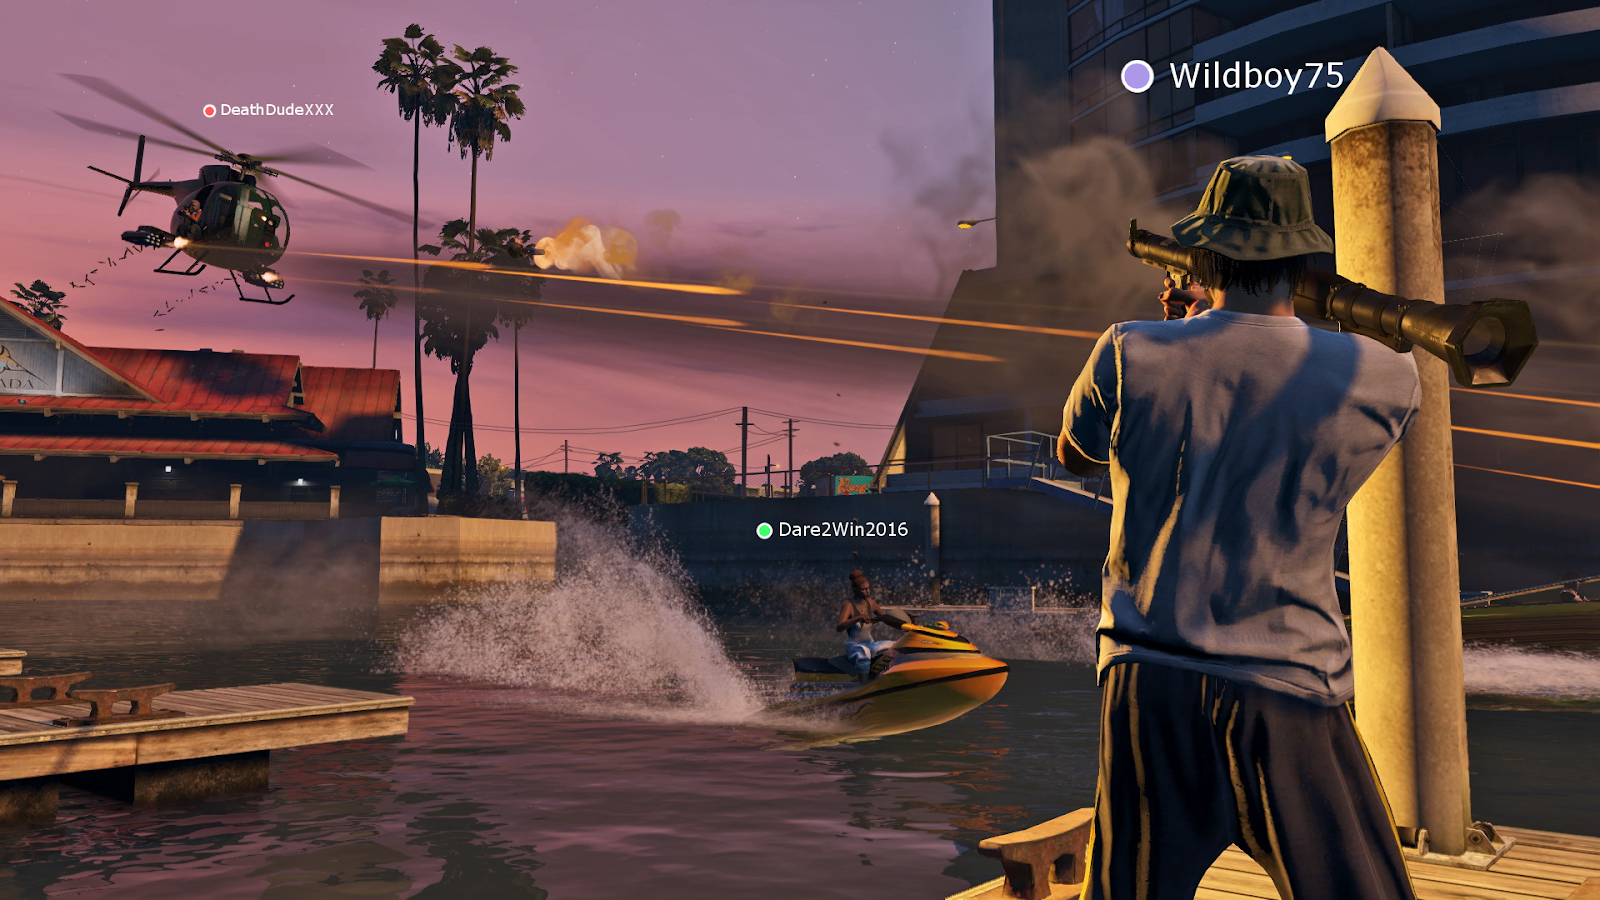 GTA Online's Biggest Problem Is Other Players